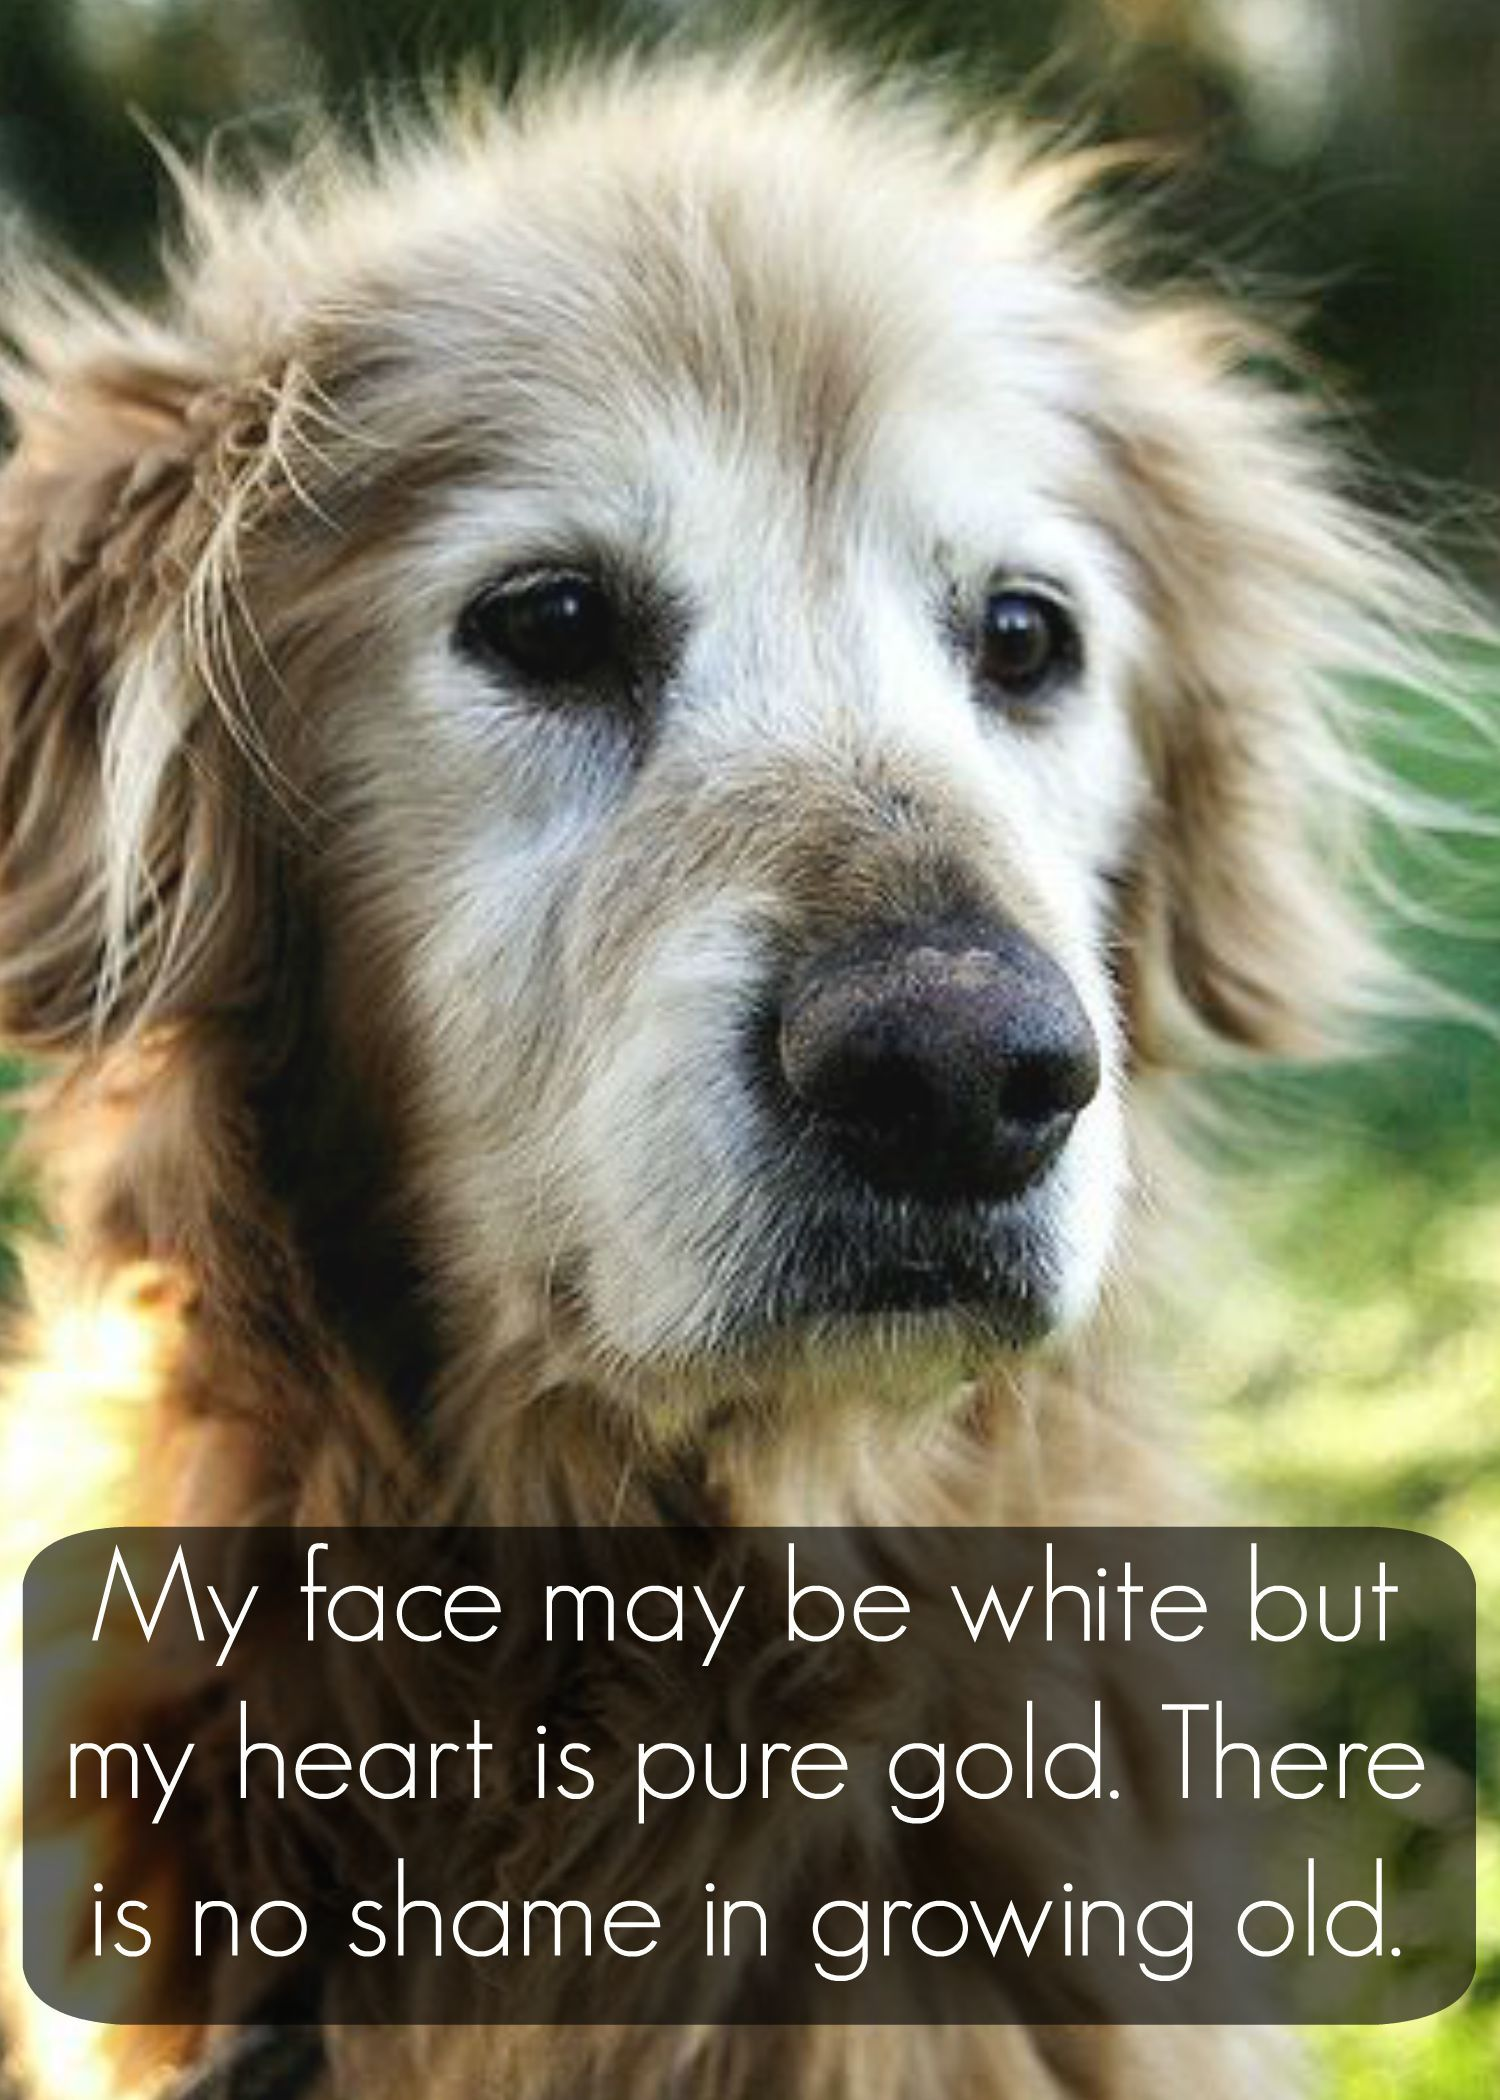 old #Golden #Retriever | #dog #quote #saying | www.fordogtrainers.com